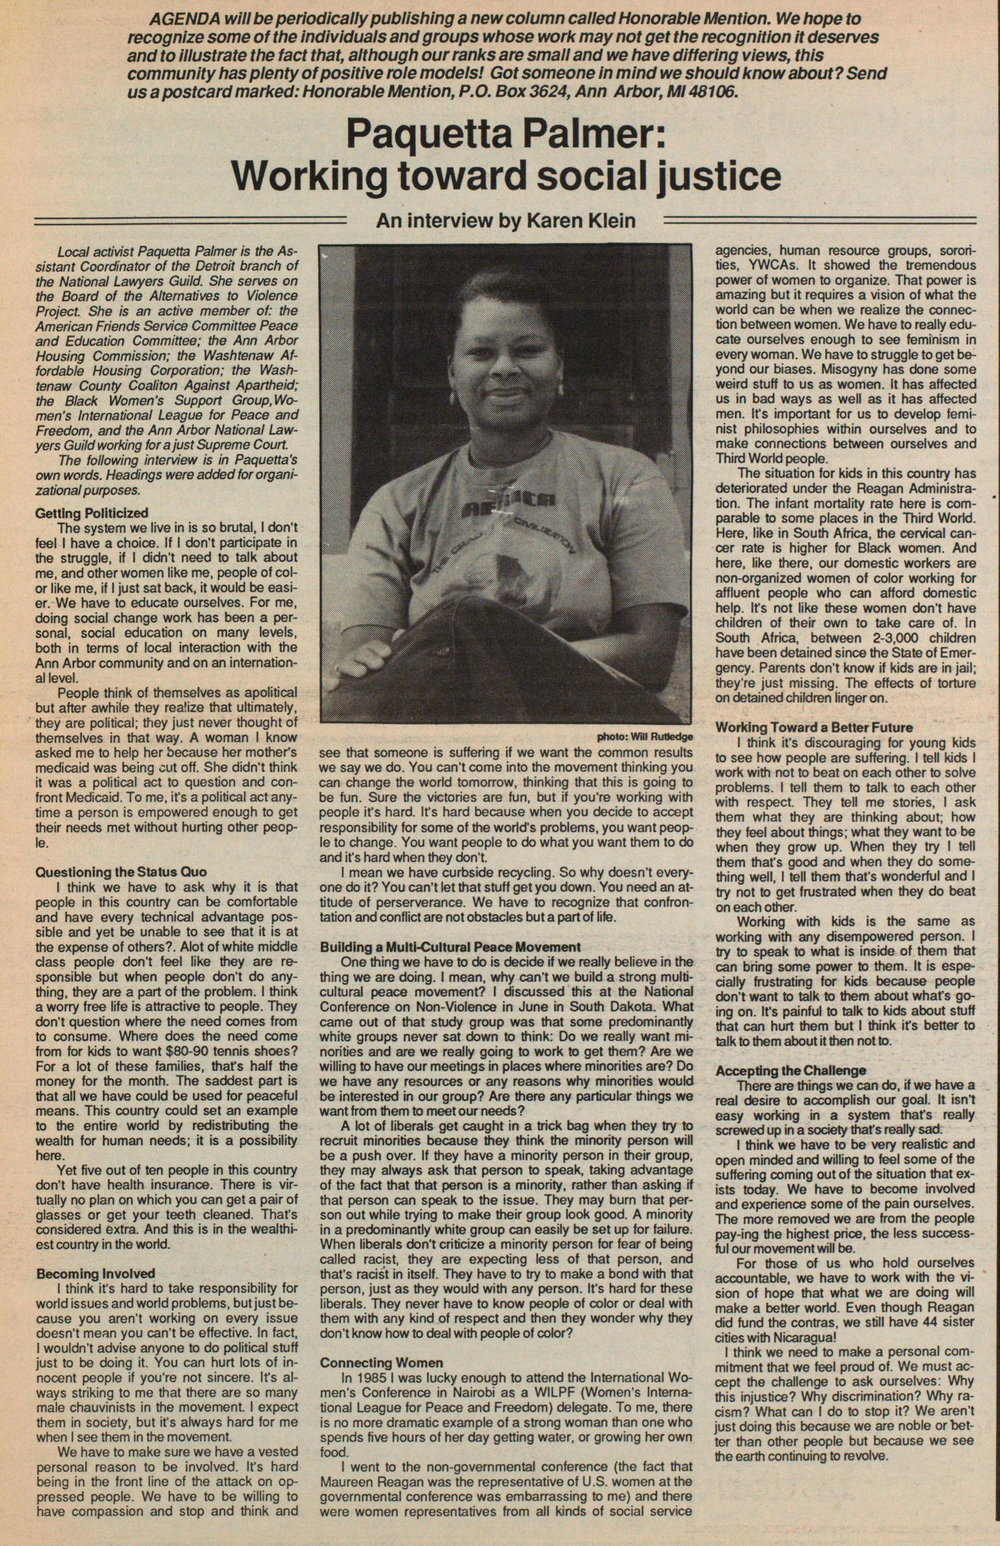 This is the  Agenda  article from 1987 discussed in the podcast. Taken from the Ann Arbor District Library website.  aadl.org